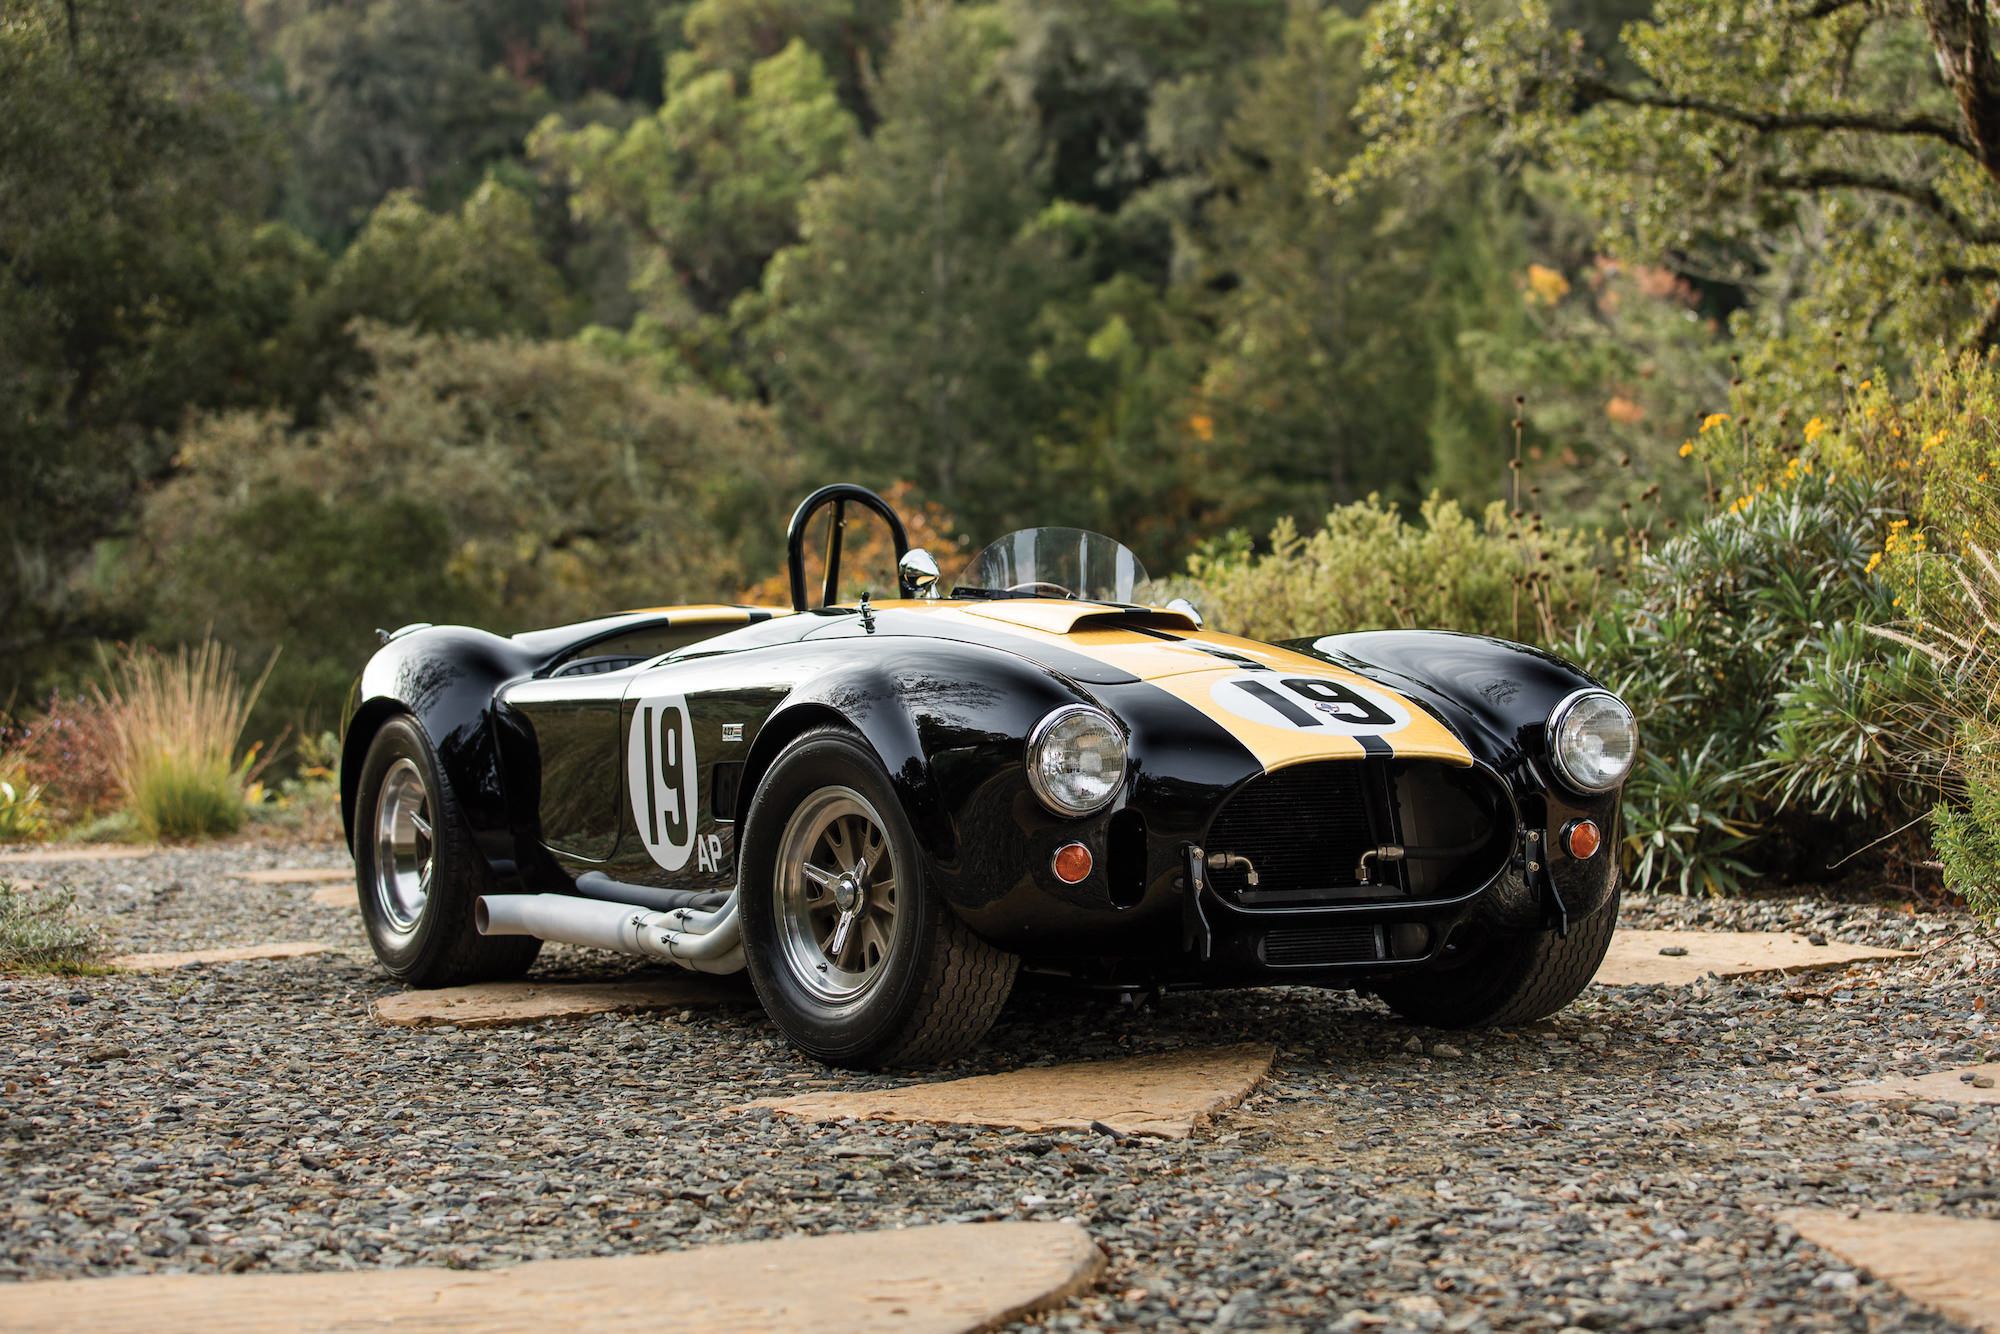 4k Car Wallpaper Mustang 1960 1965 Shelby 427 Competition Cobra